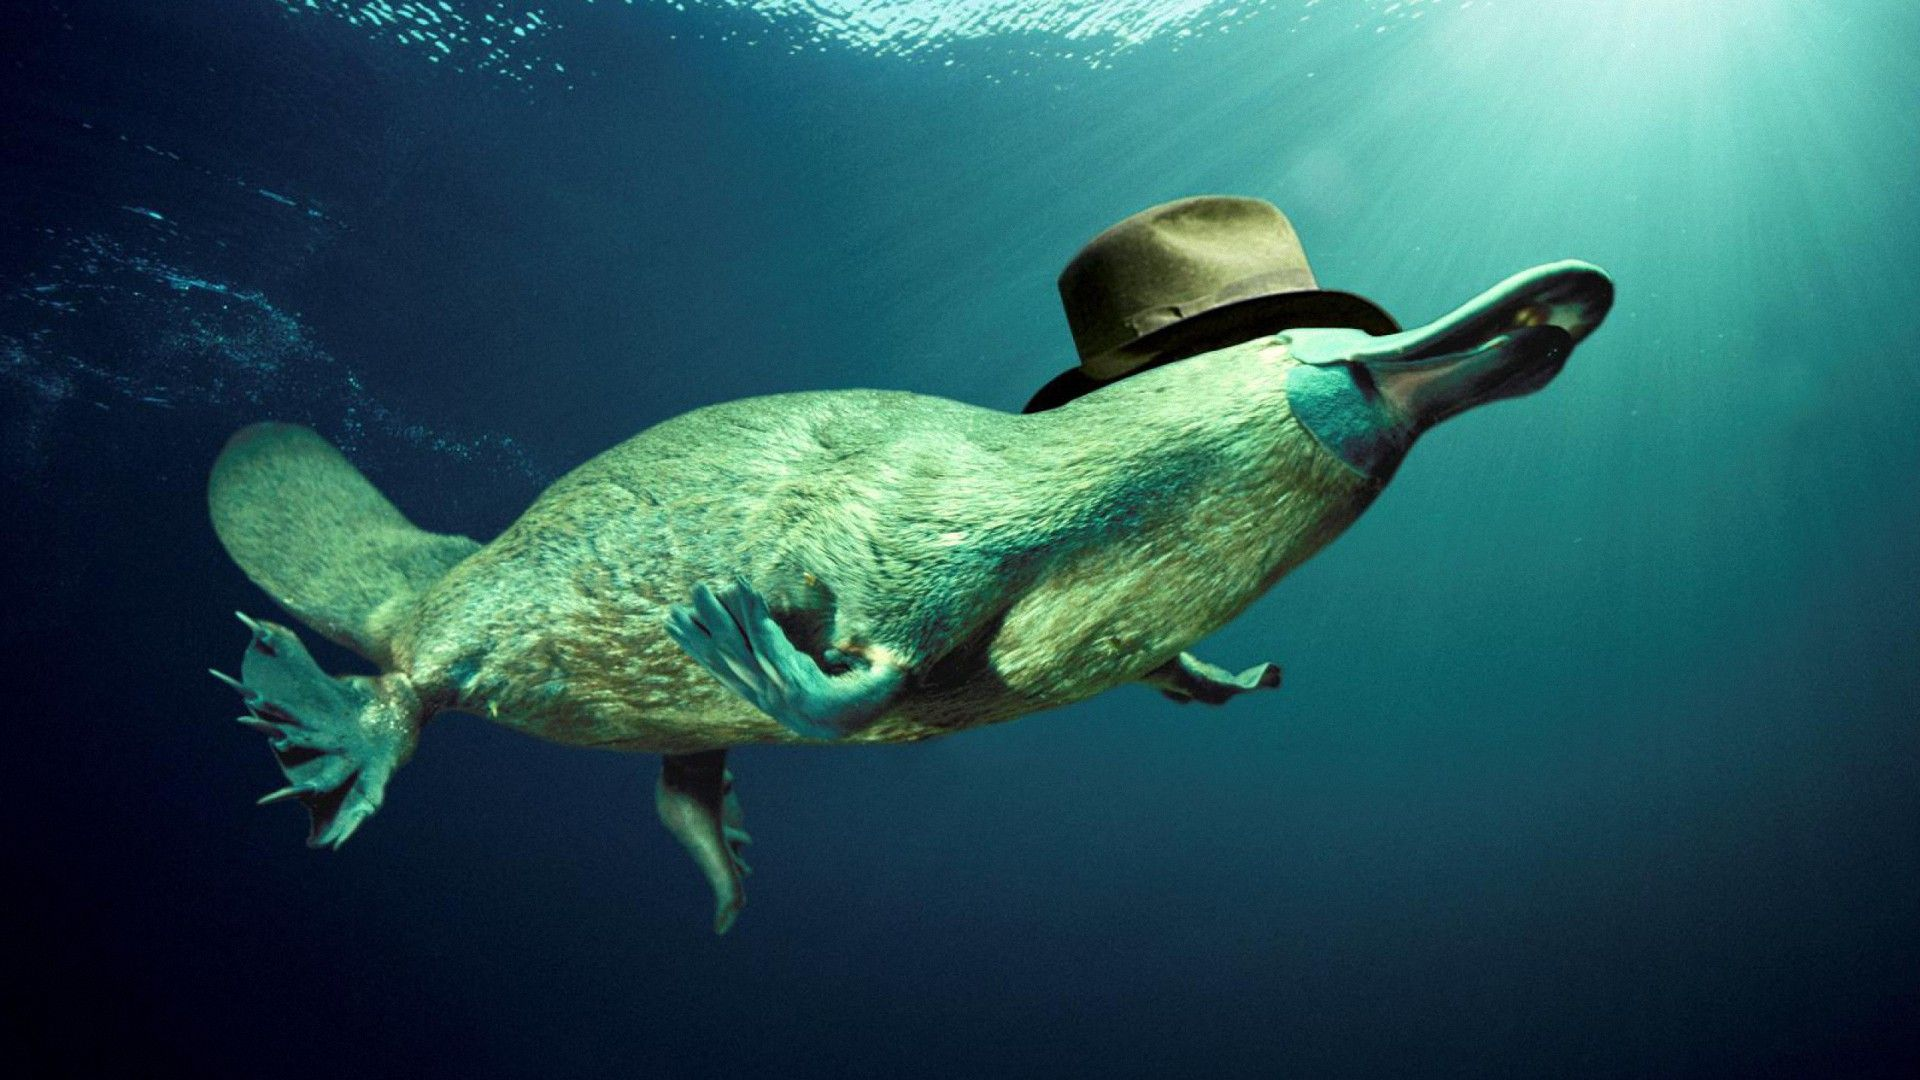 3d Platypus Underwater Hd Wallpapers Platypus Animals Animal Wallpaper